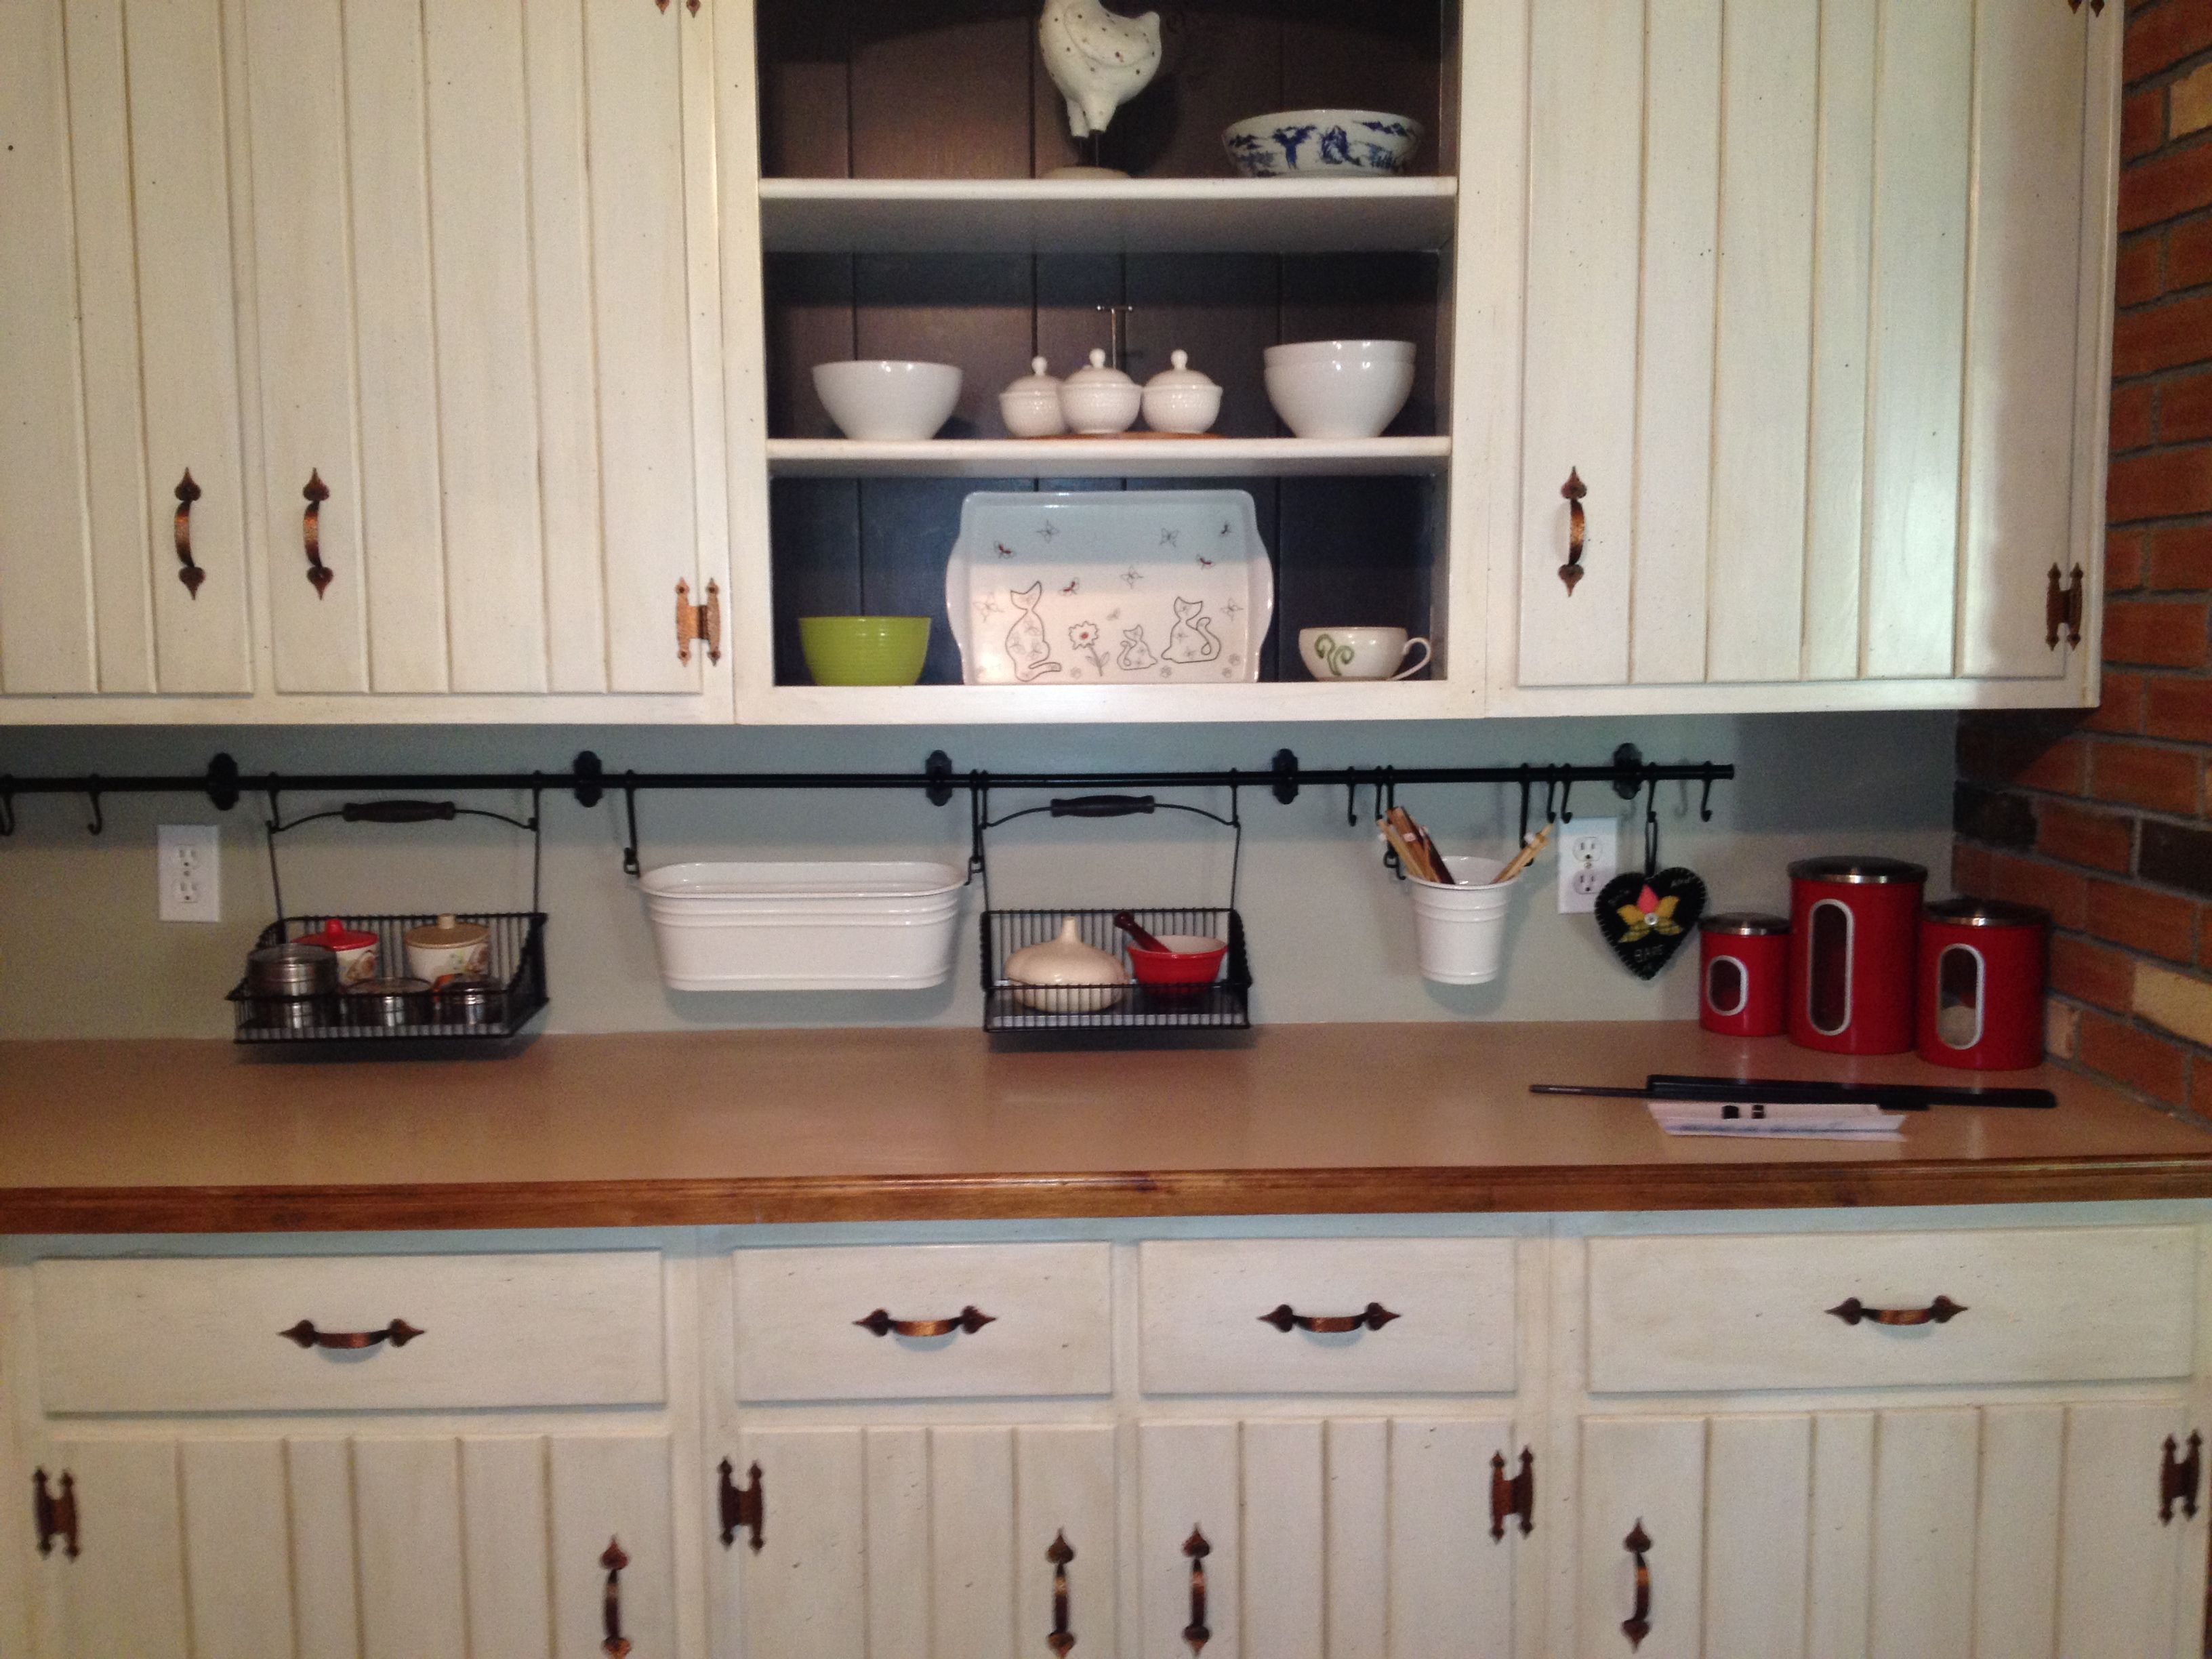 Kitchen Rail System Cabinets Greenville Sc Ikea For Storage Diy Yes I Can Rails Ideas